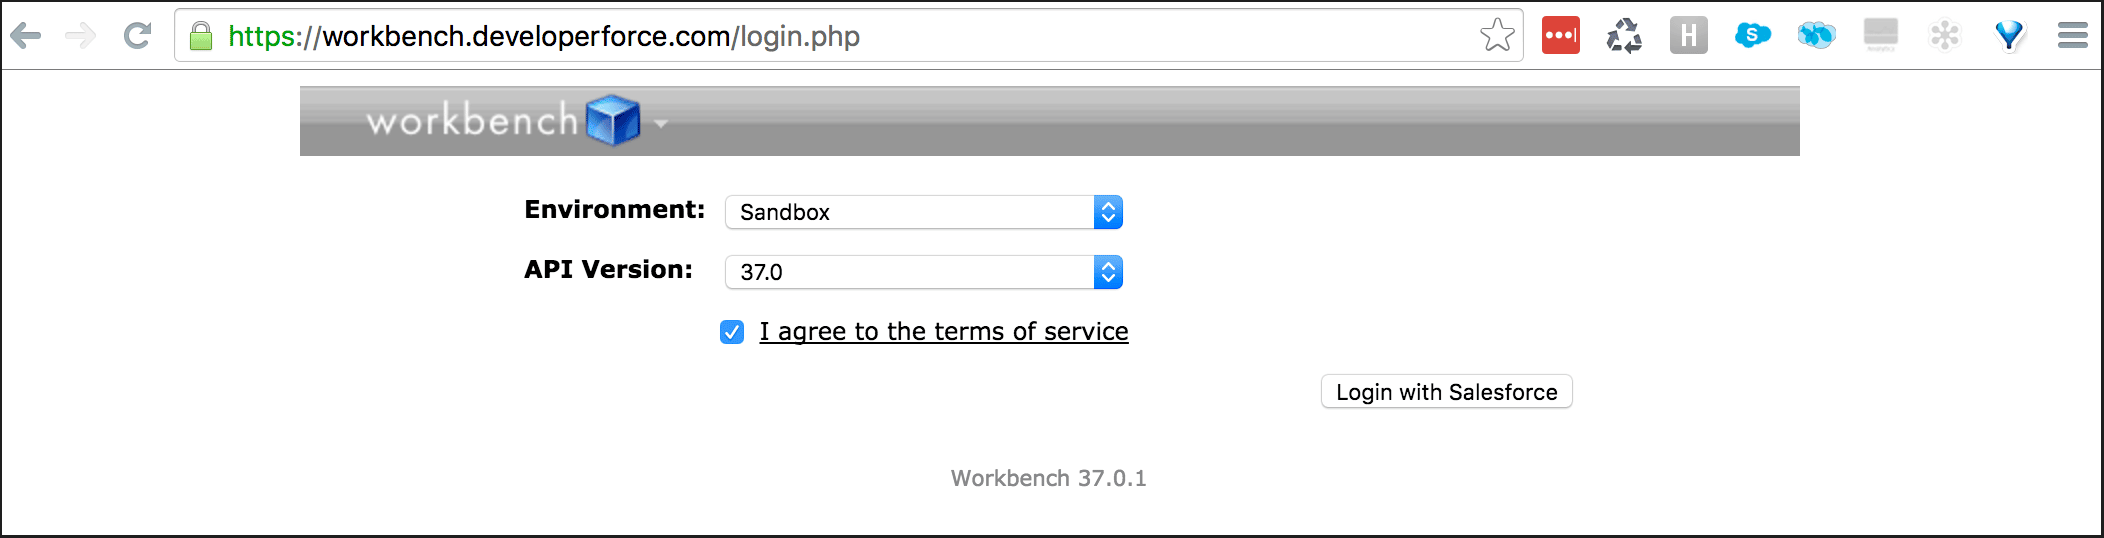 Workbench login to get your test results out of Salesforce